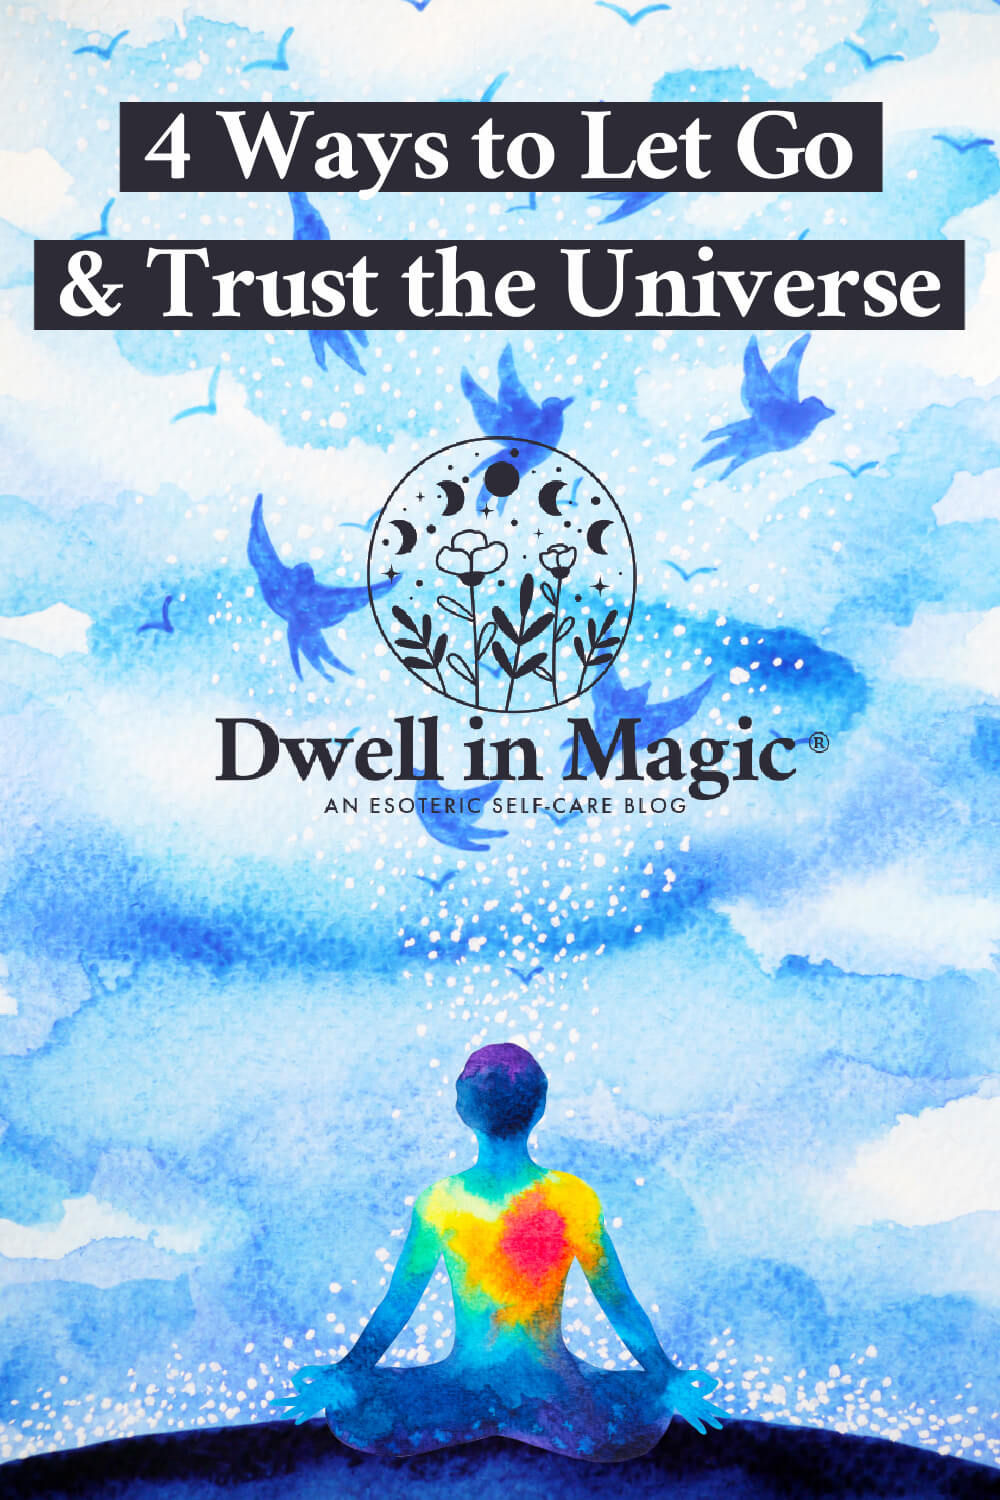 4 ways to let go and trust the universe